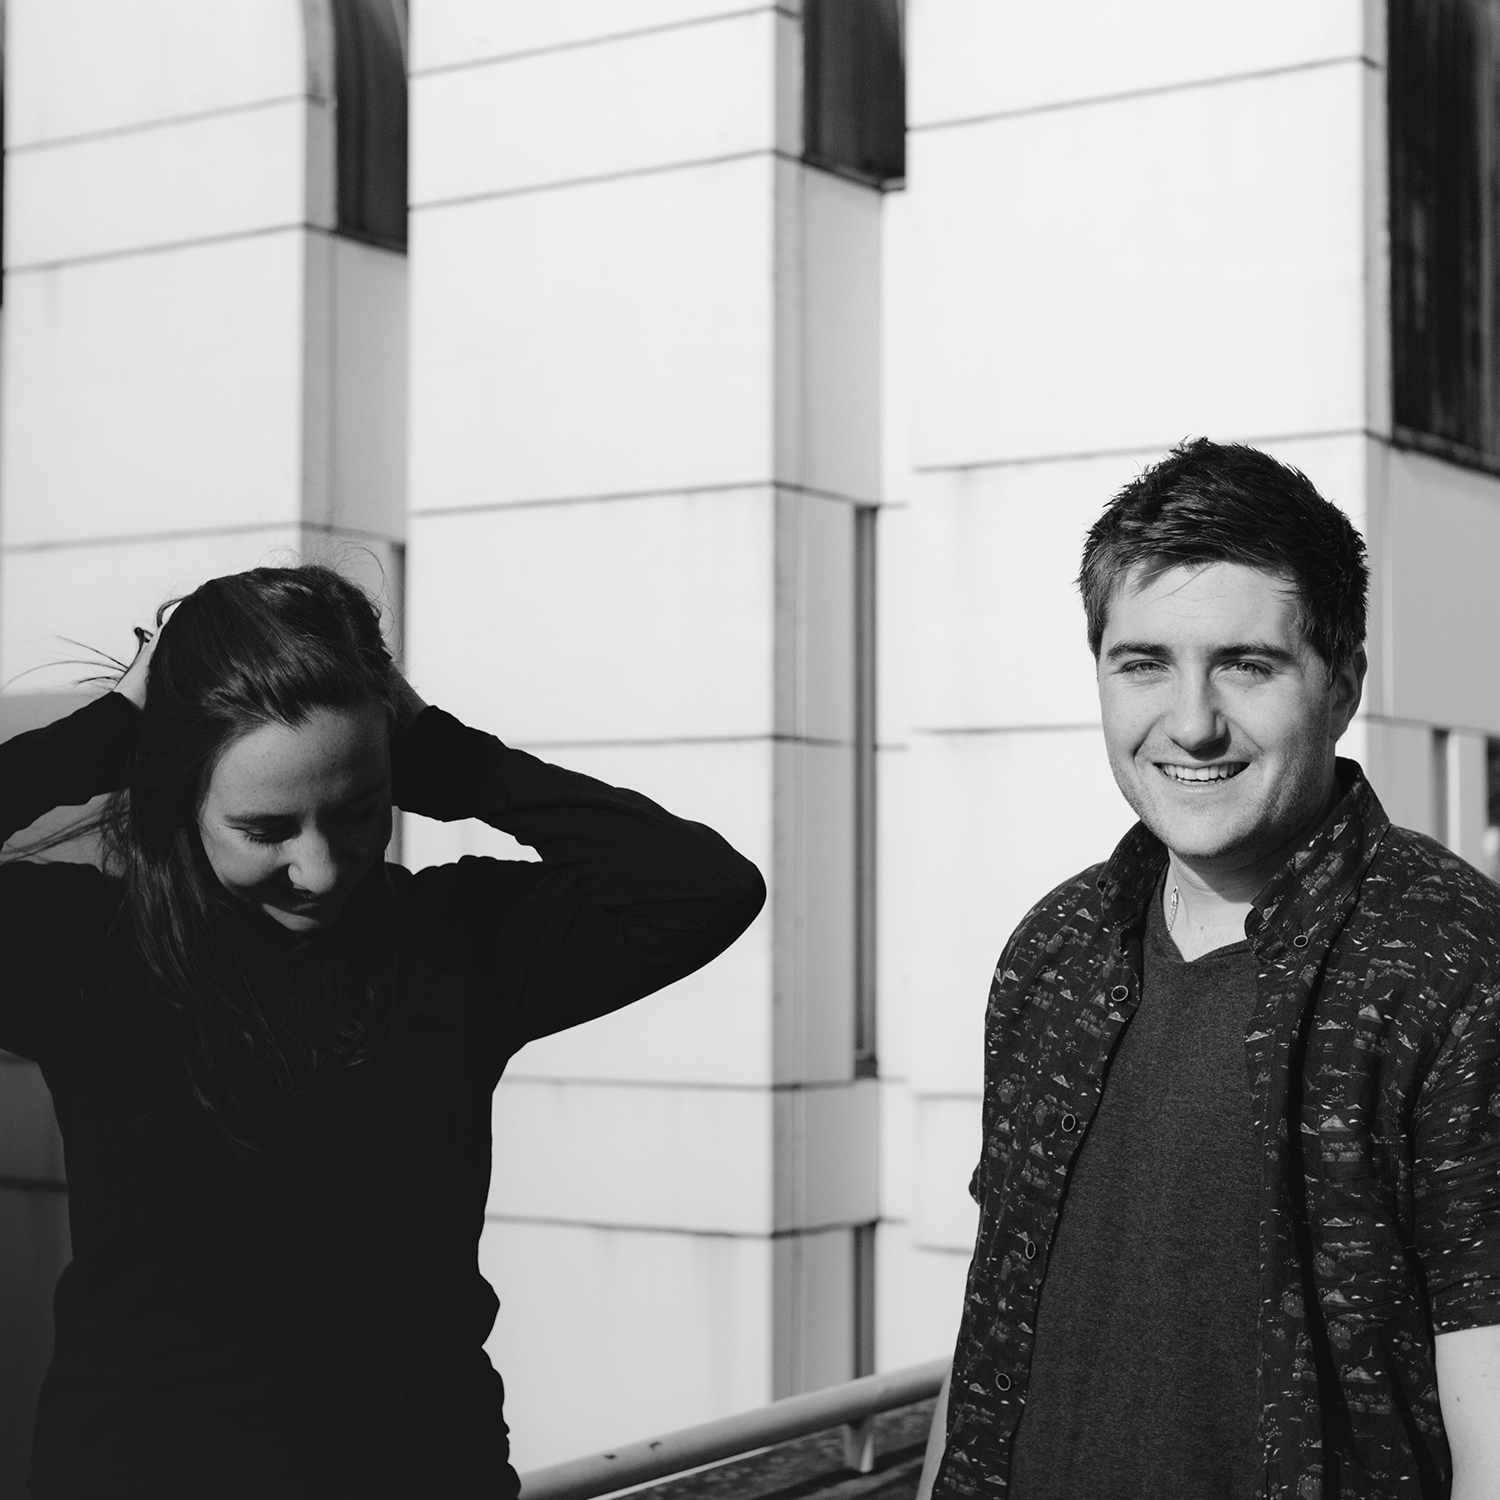 Image of founders Kelsey O'Hagan and David Sowry outside of the Bauhaus in Berlin